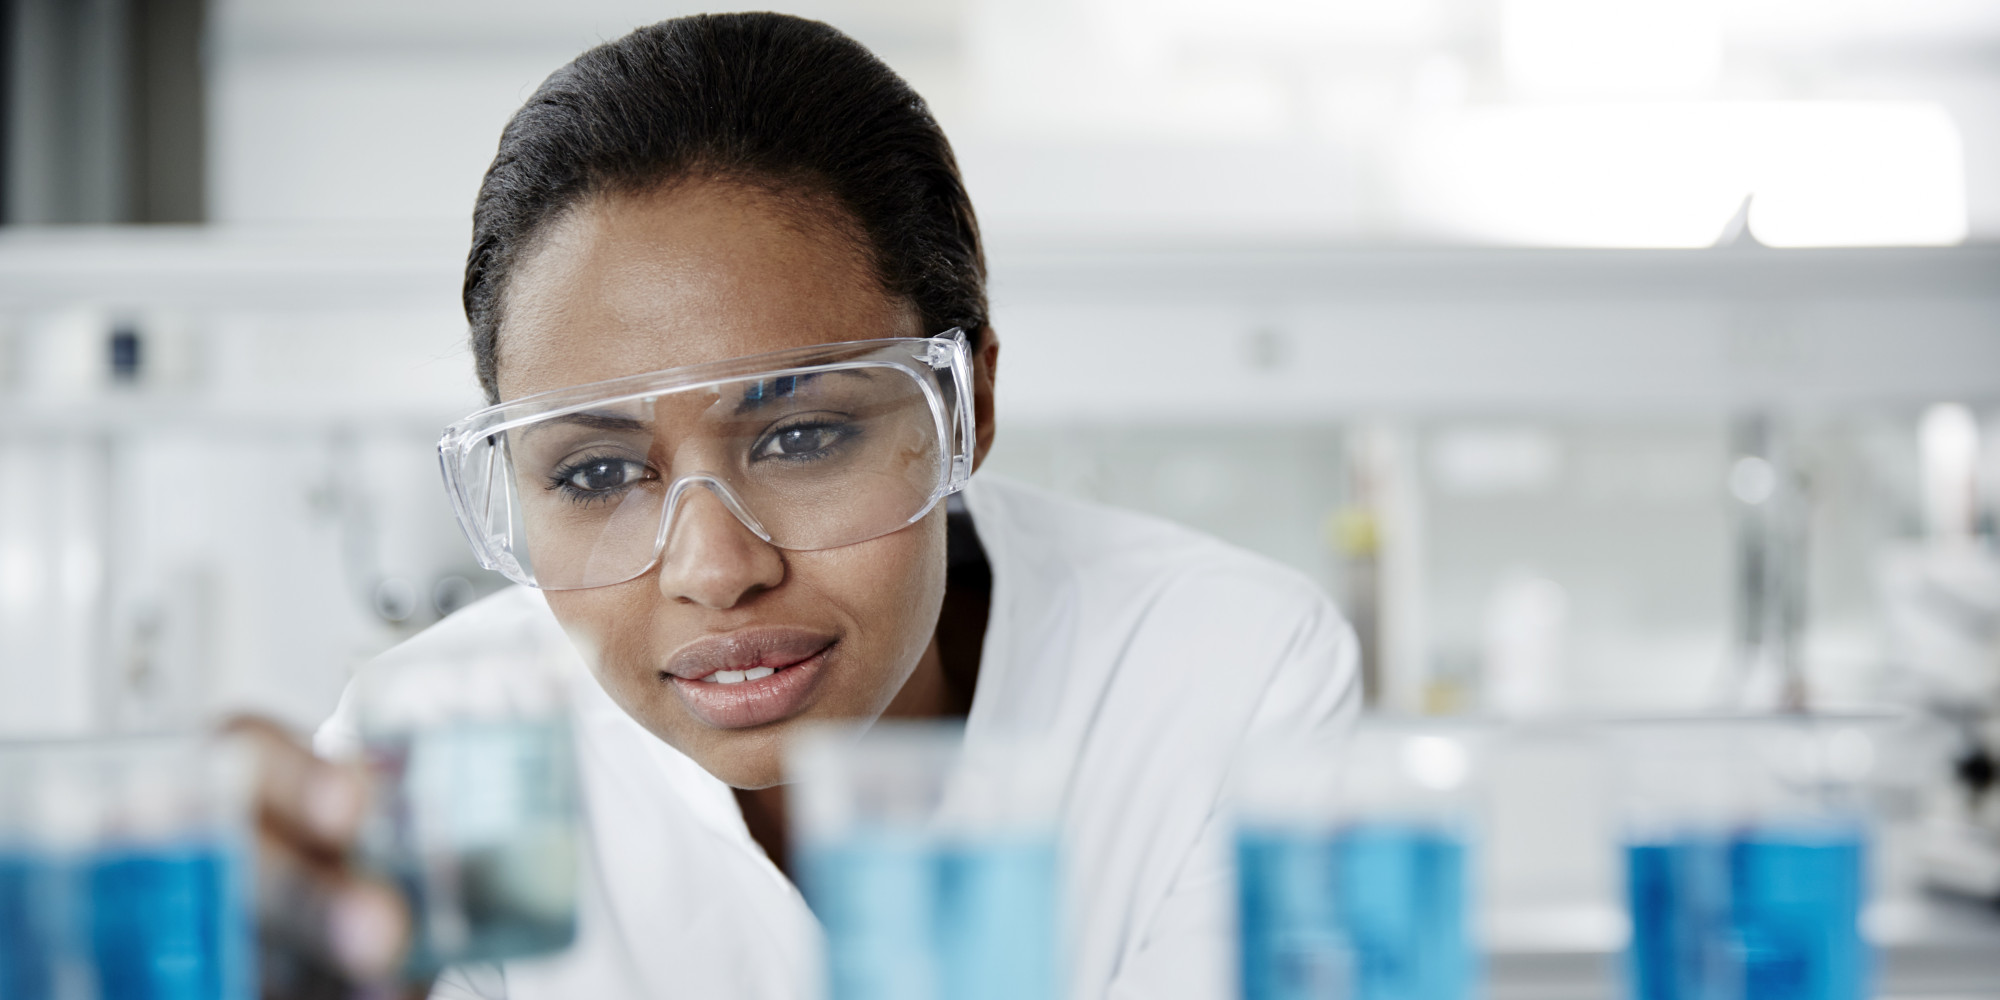 An easy way to help women in science